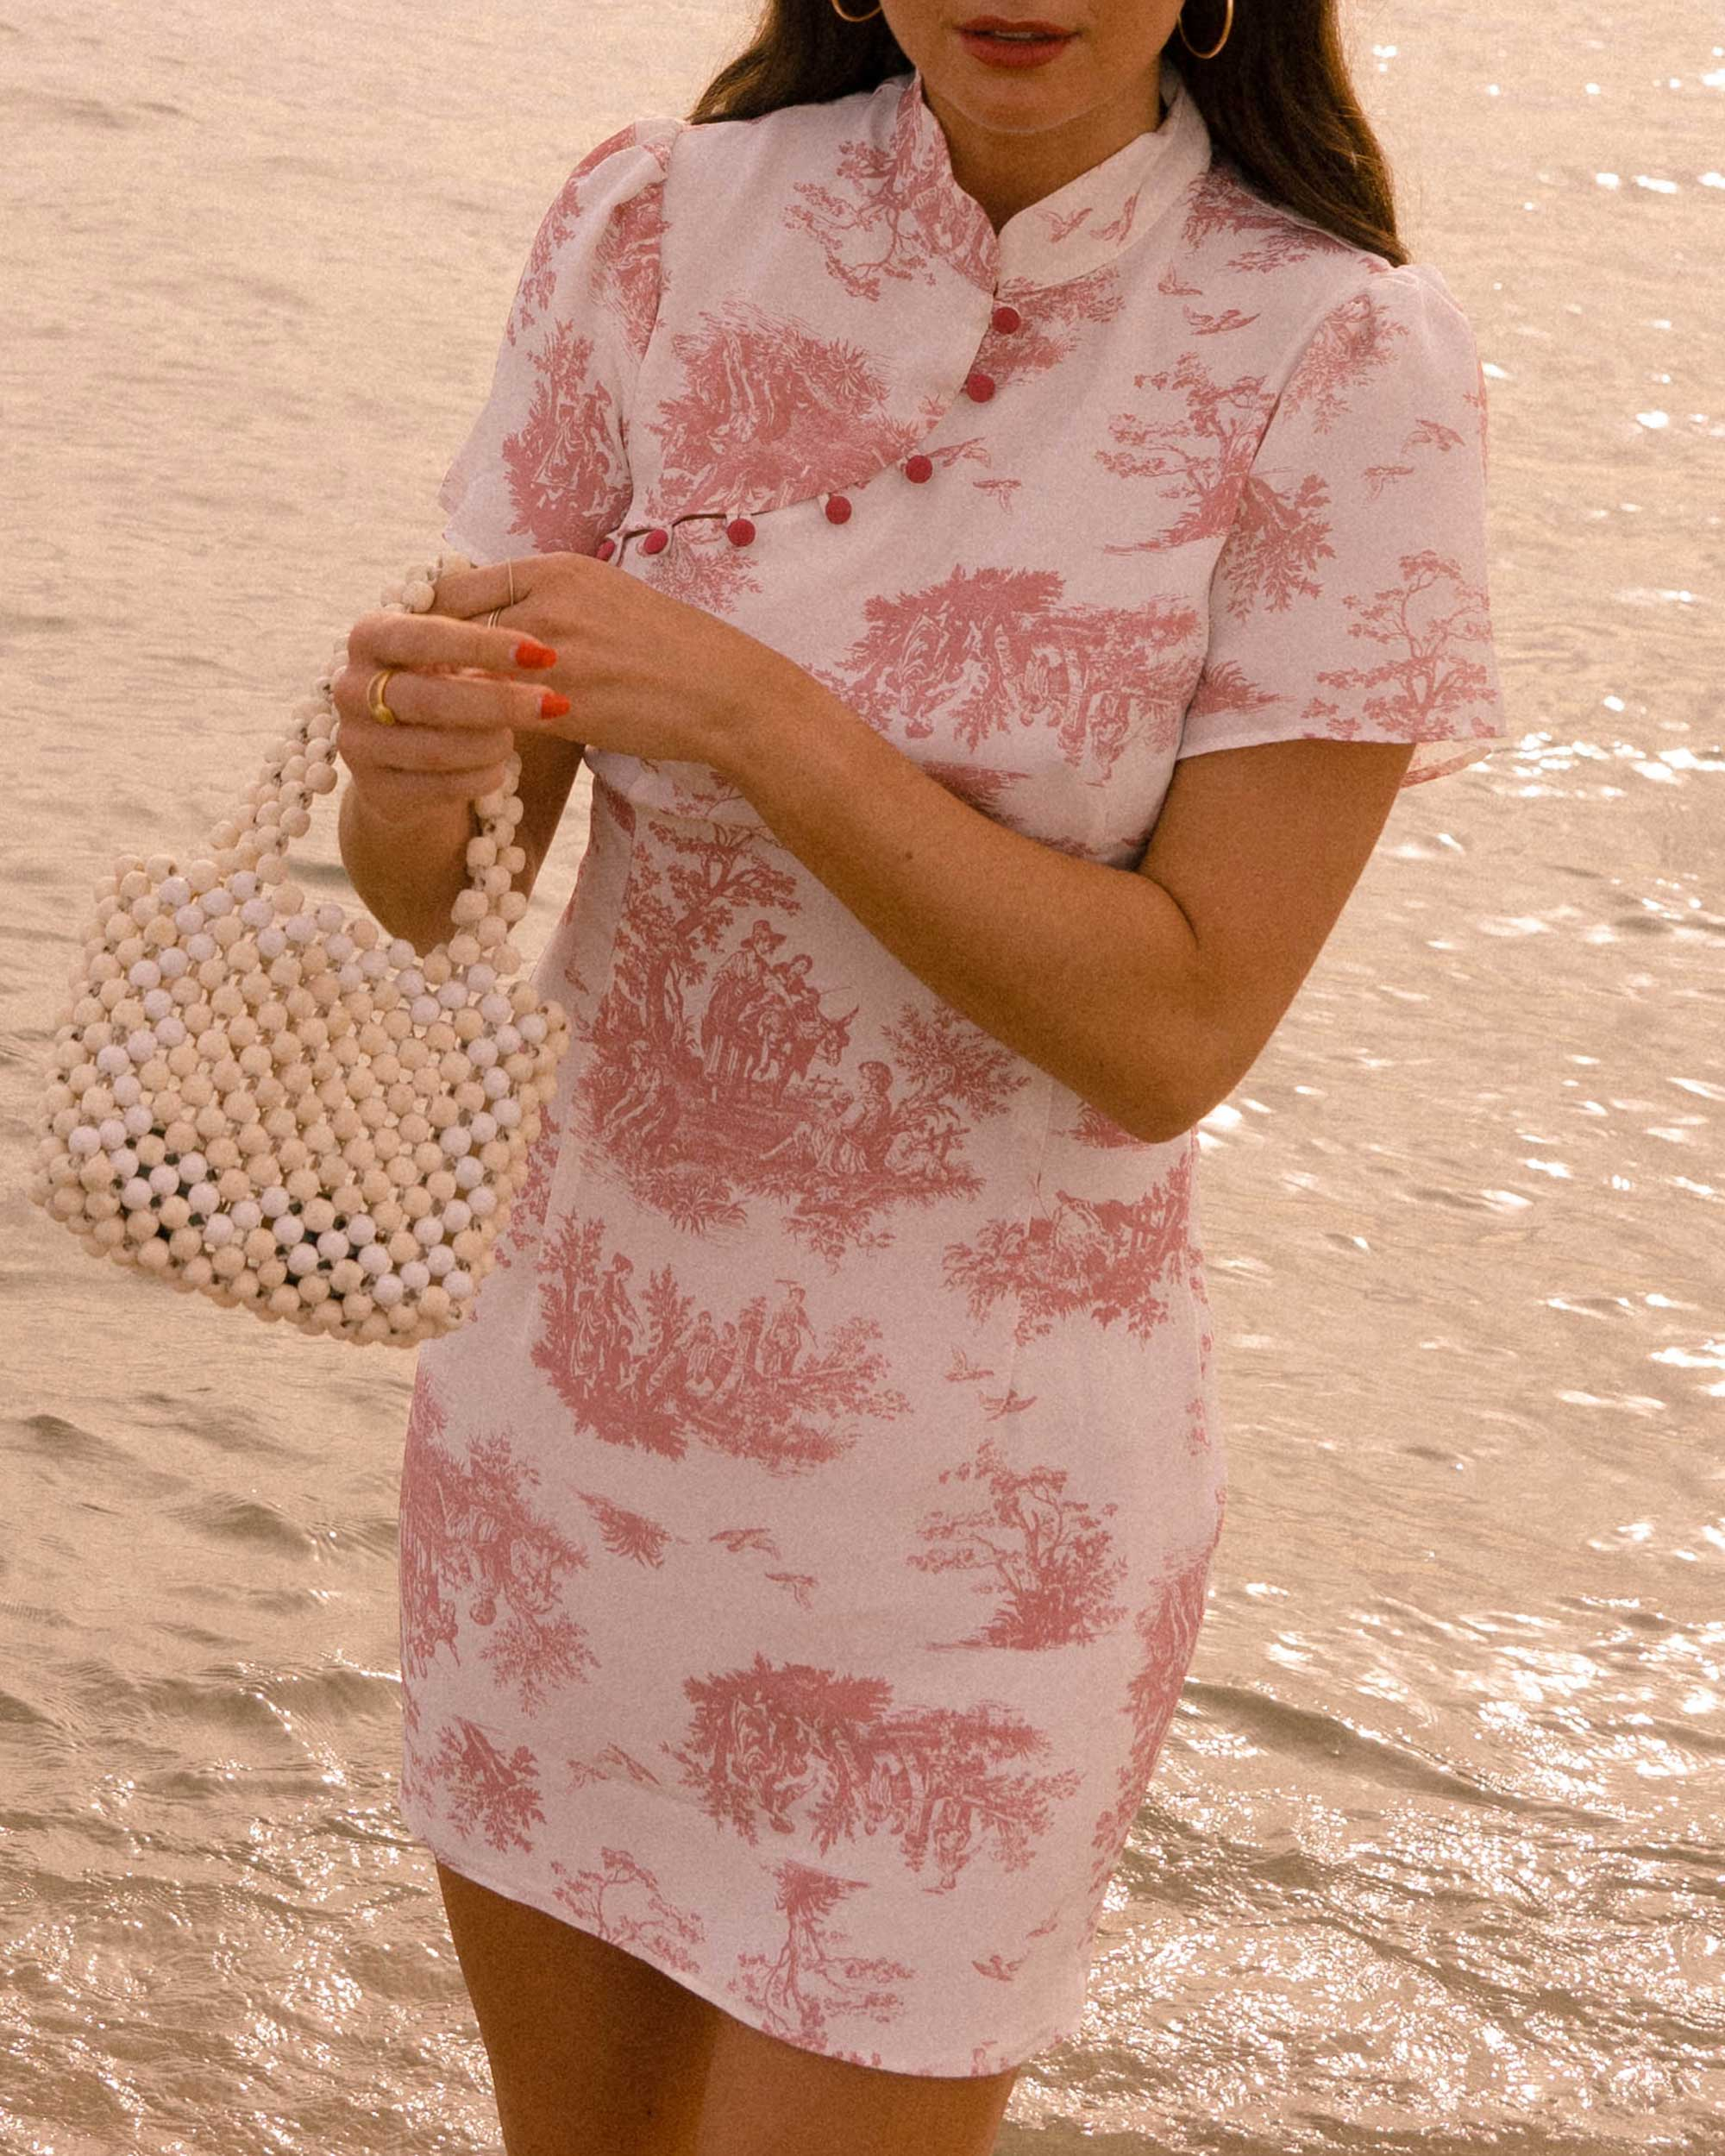 Sarah Butler of Sarah Styles Seattle wears Stone Cold Fox Lure Pink Toile Print Mini Dress in Newport Beach, California for the perfect spring outfit | @sarahchristine -3.jpg